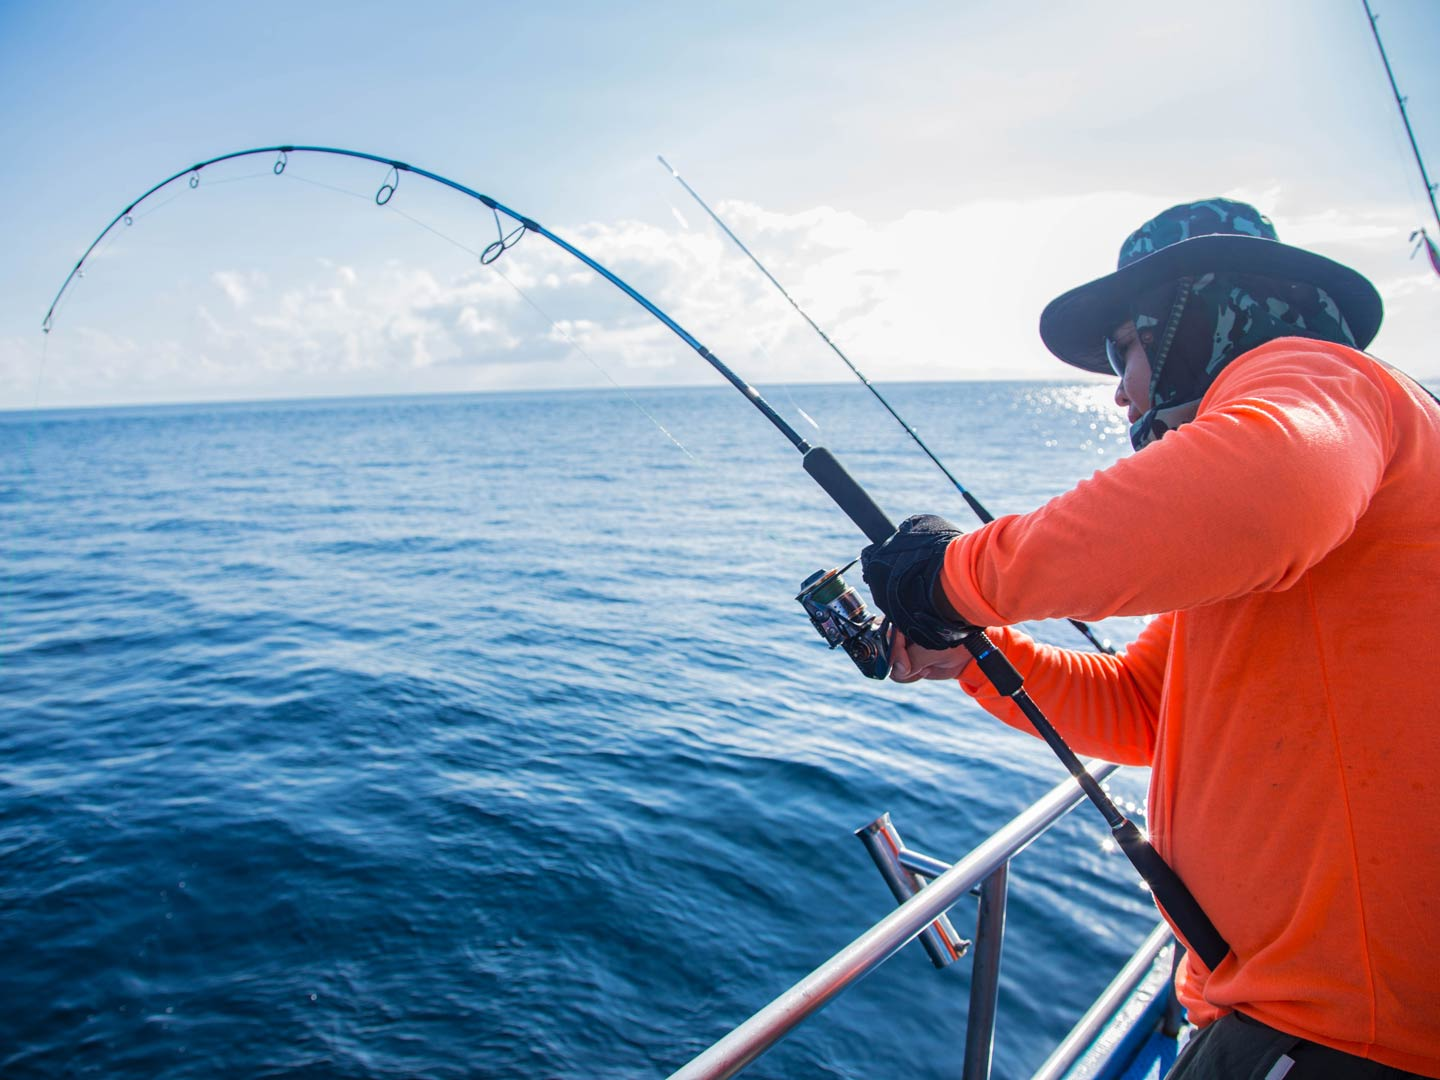 An angler holding on to a bent rod, battling a fish